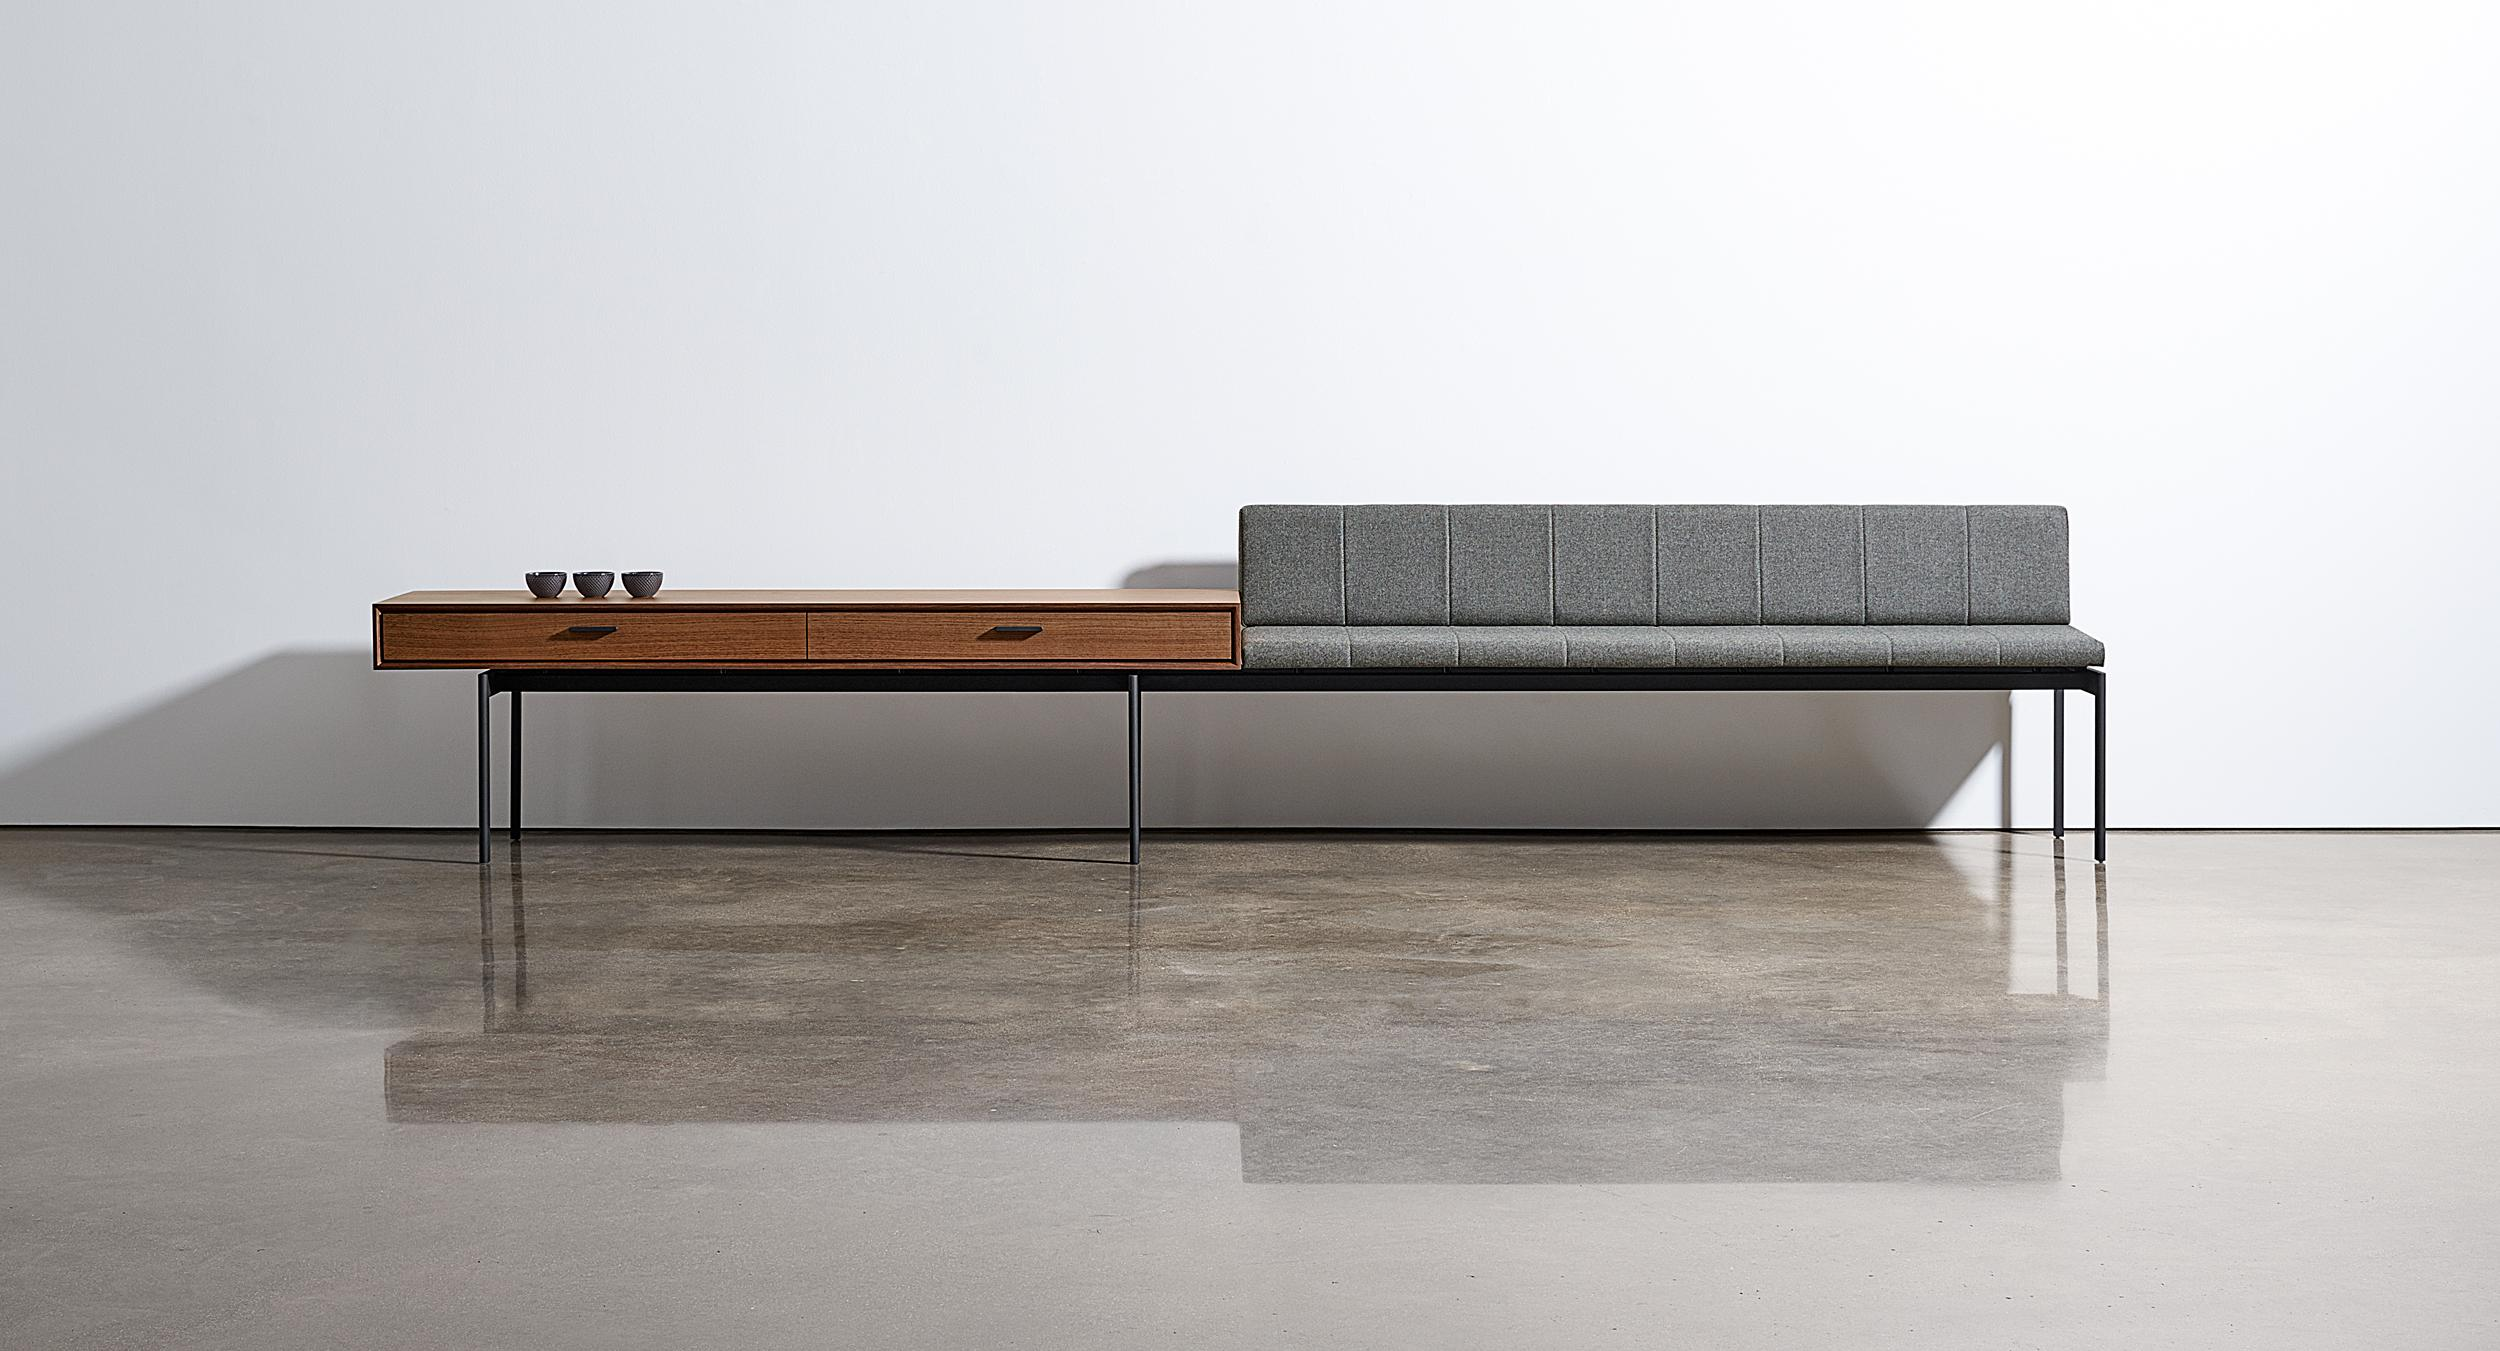 Halo seamlessly integrates gallery seating with storage elements.